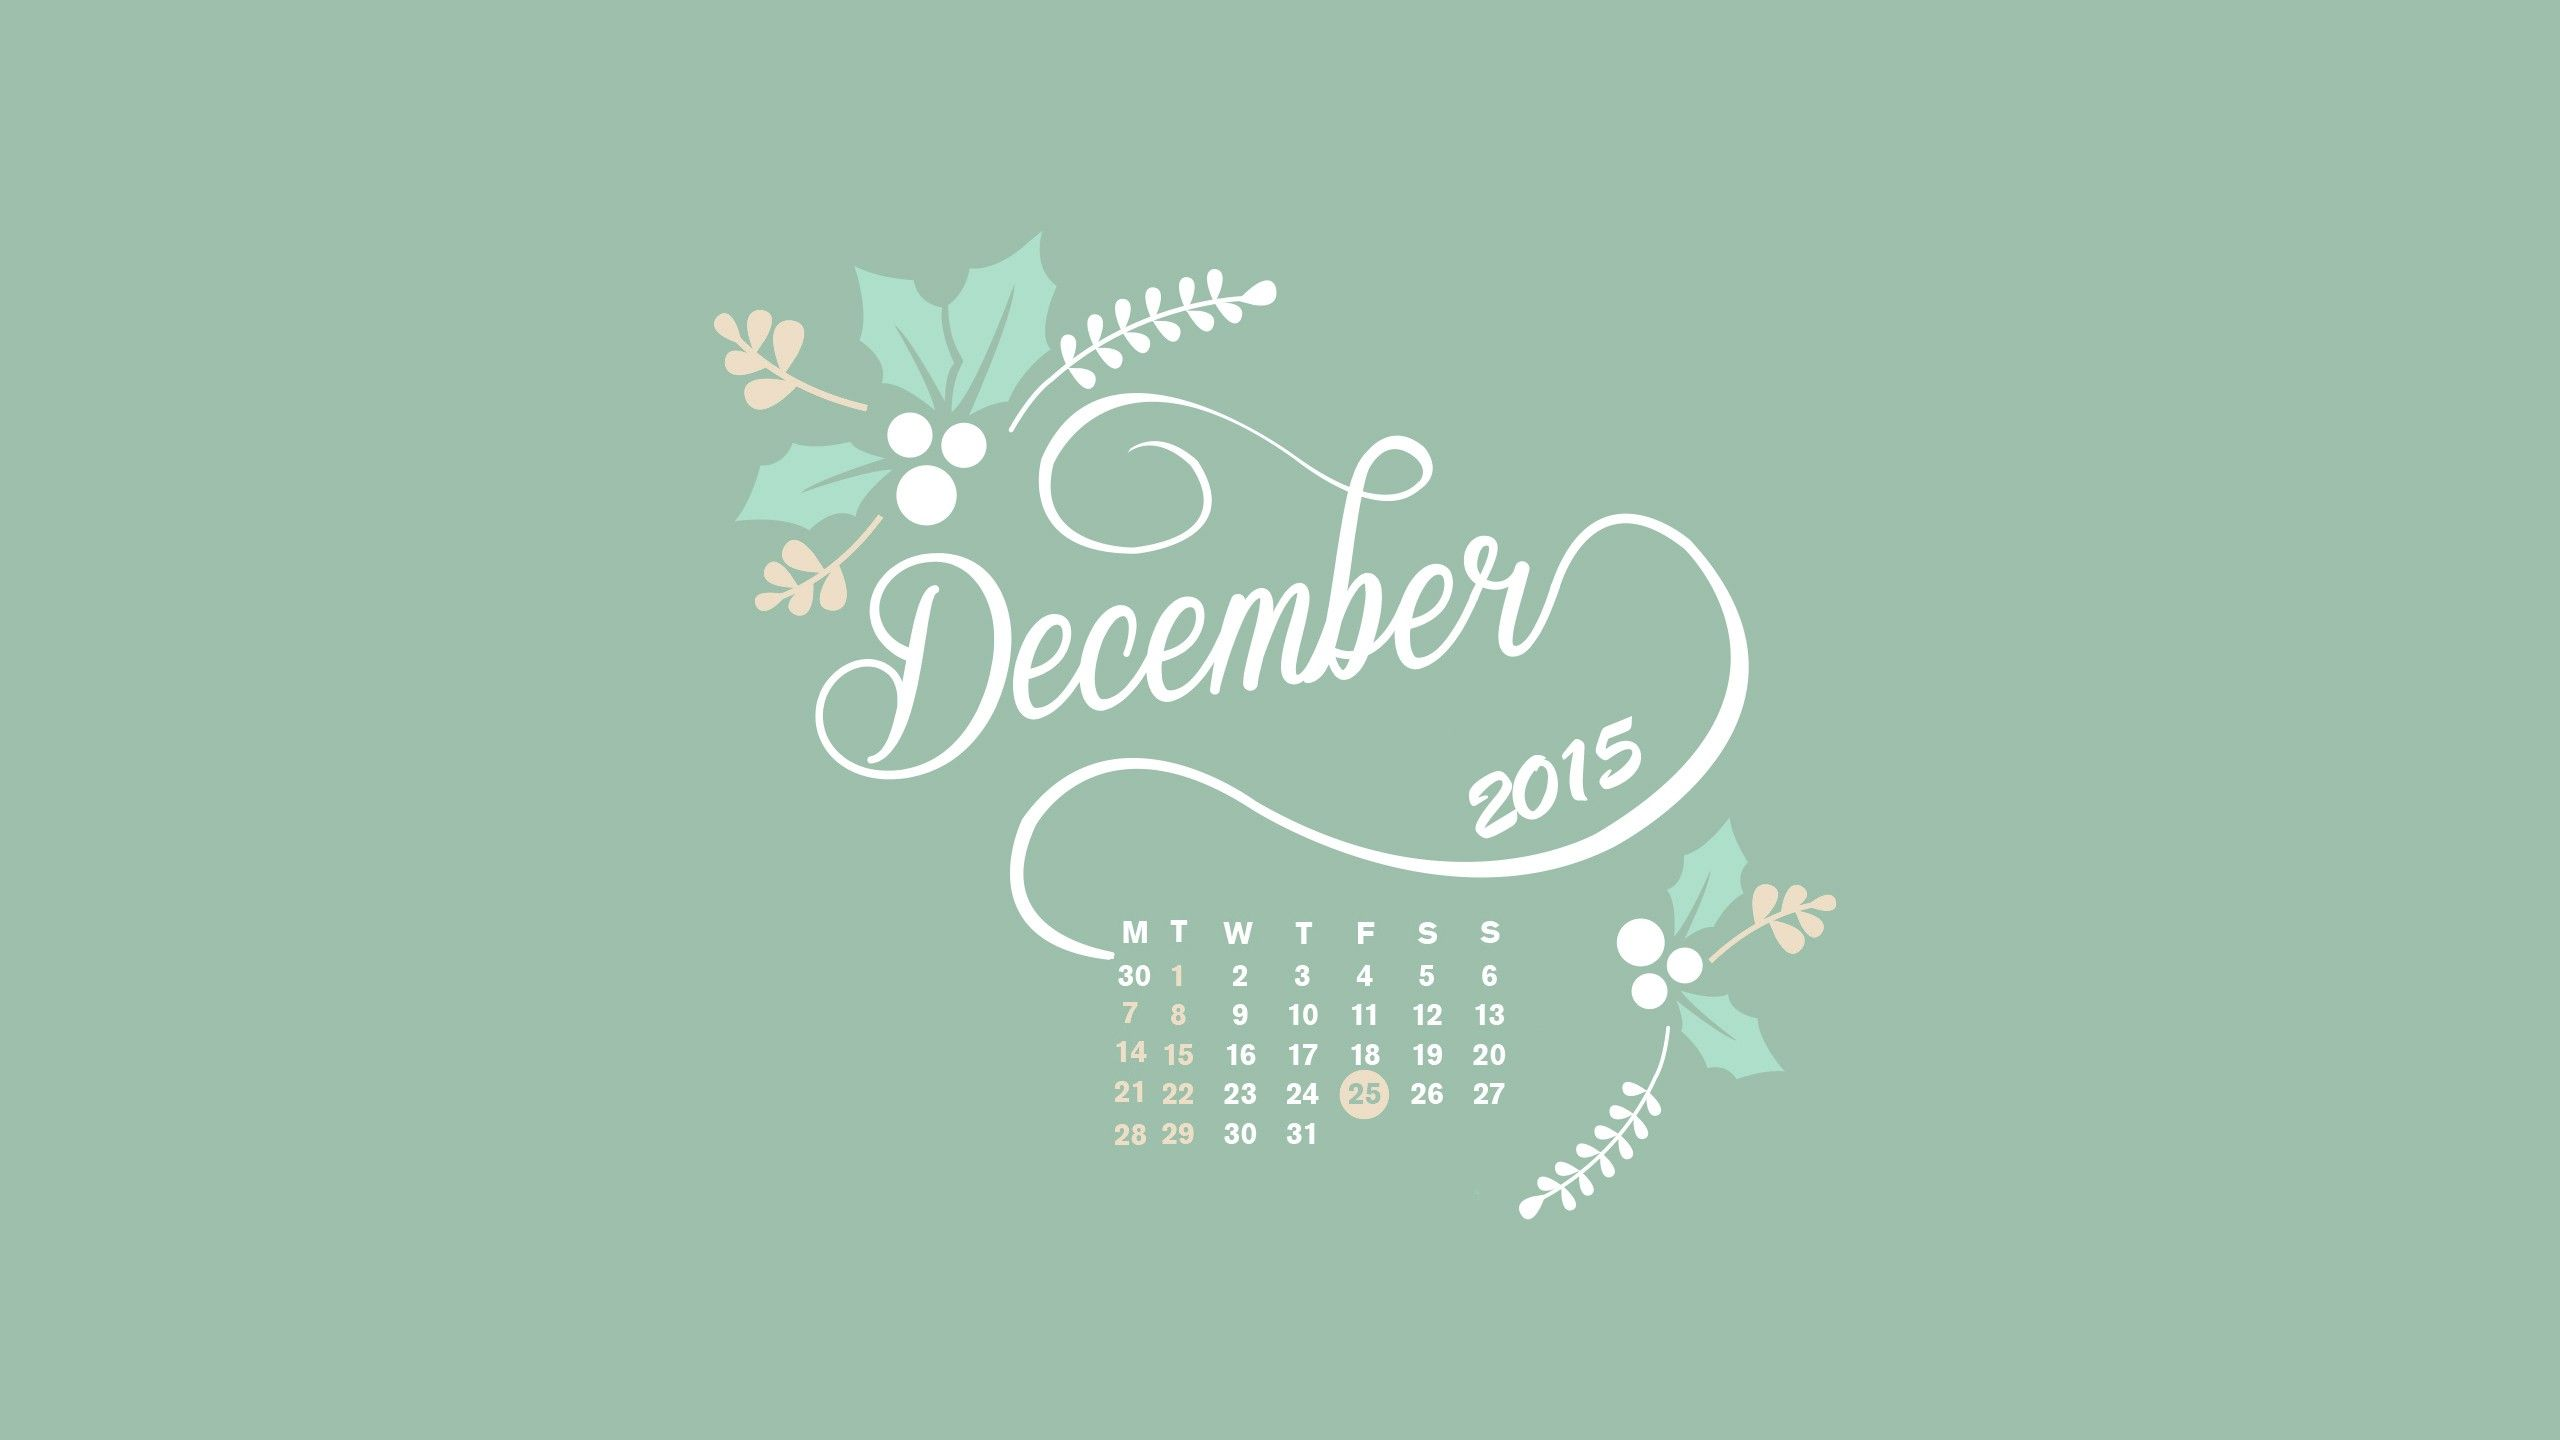 December-2015-Calendar-Wallpapers